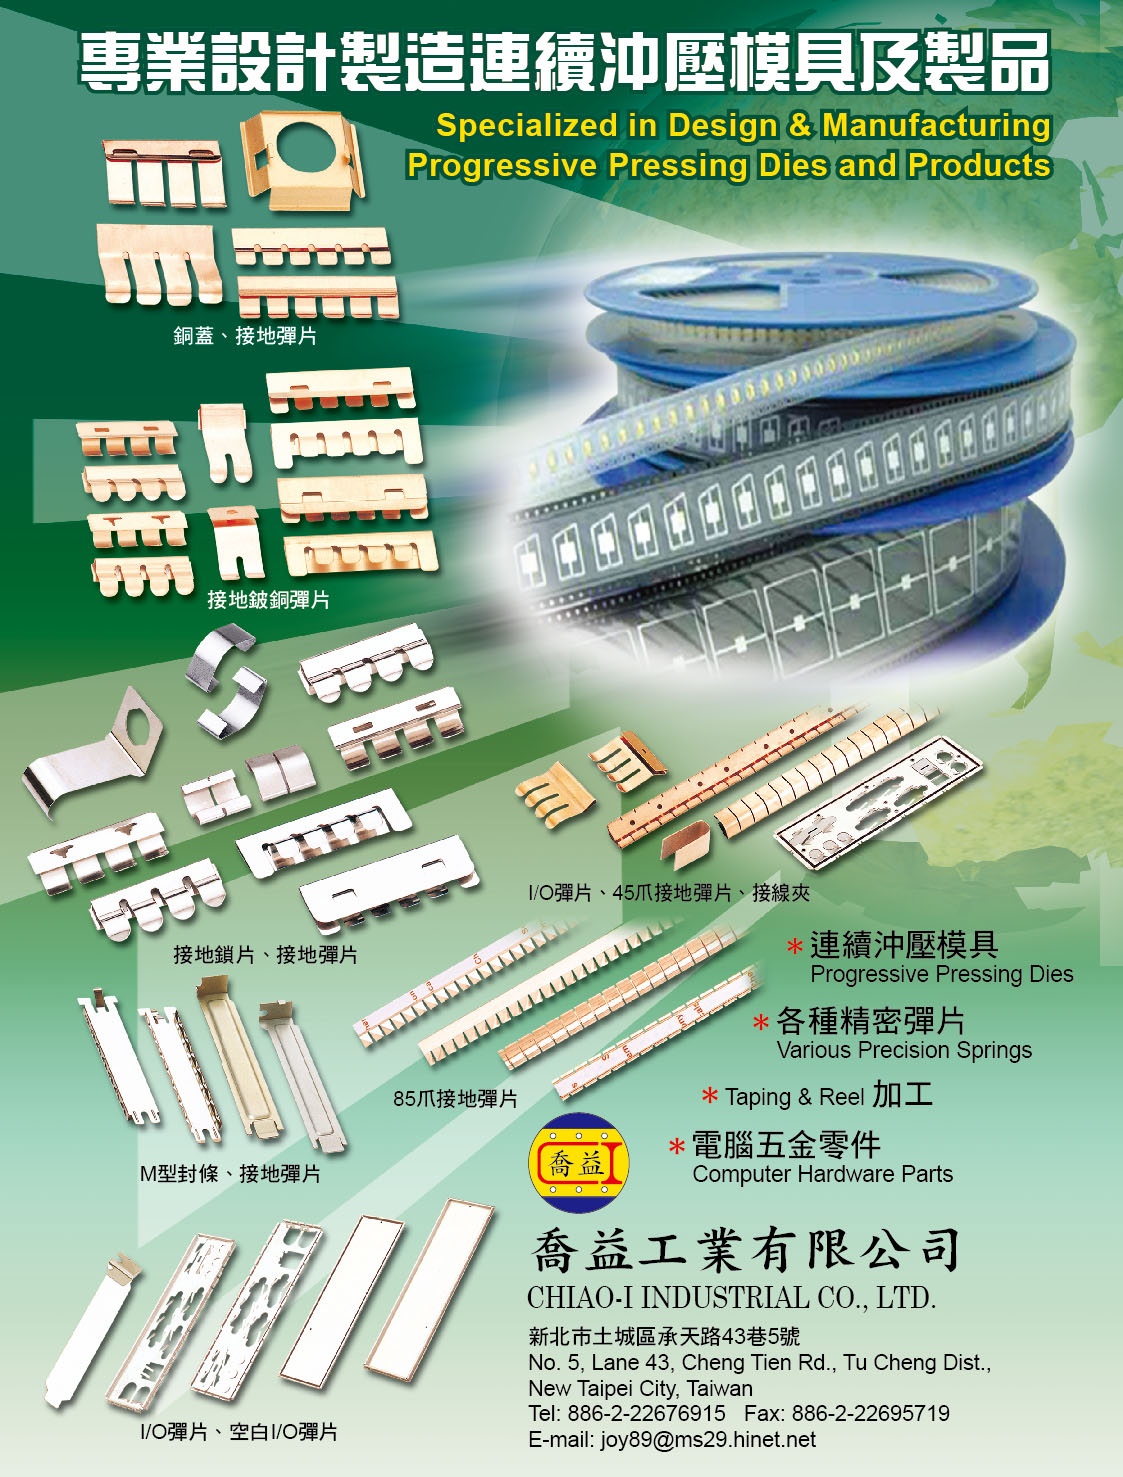 CHIAO-I INDUSTRIAL CO., LTD.